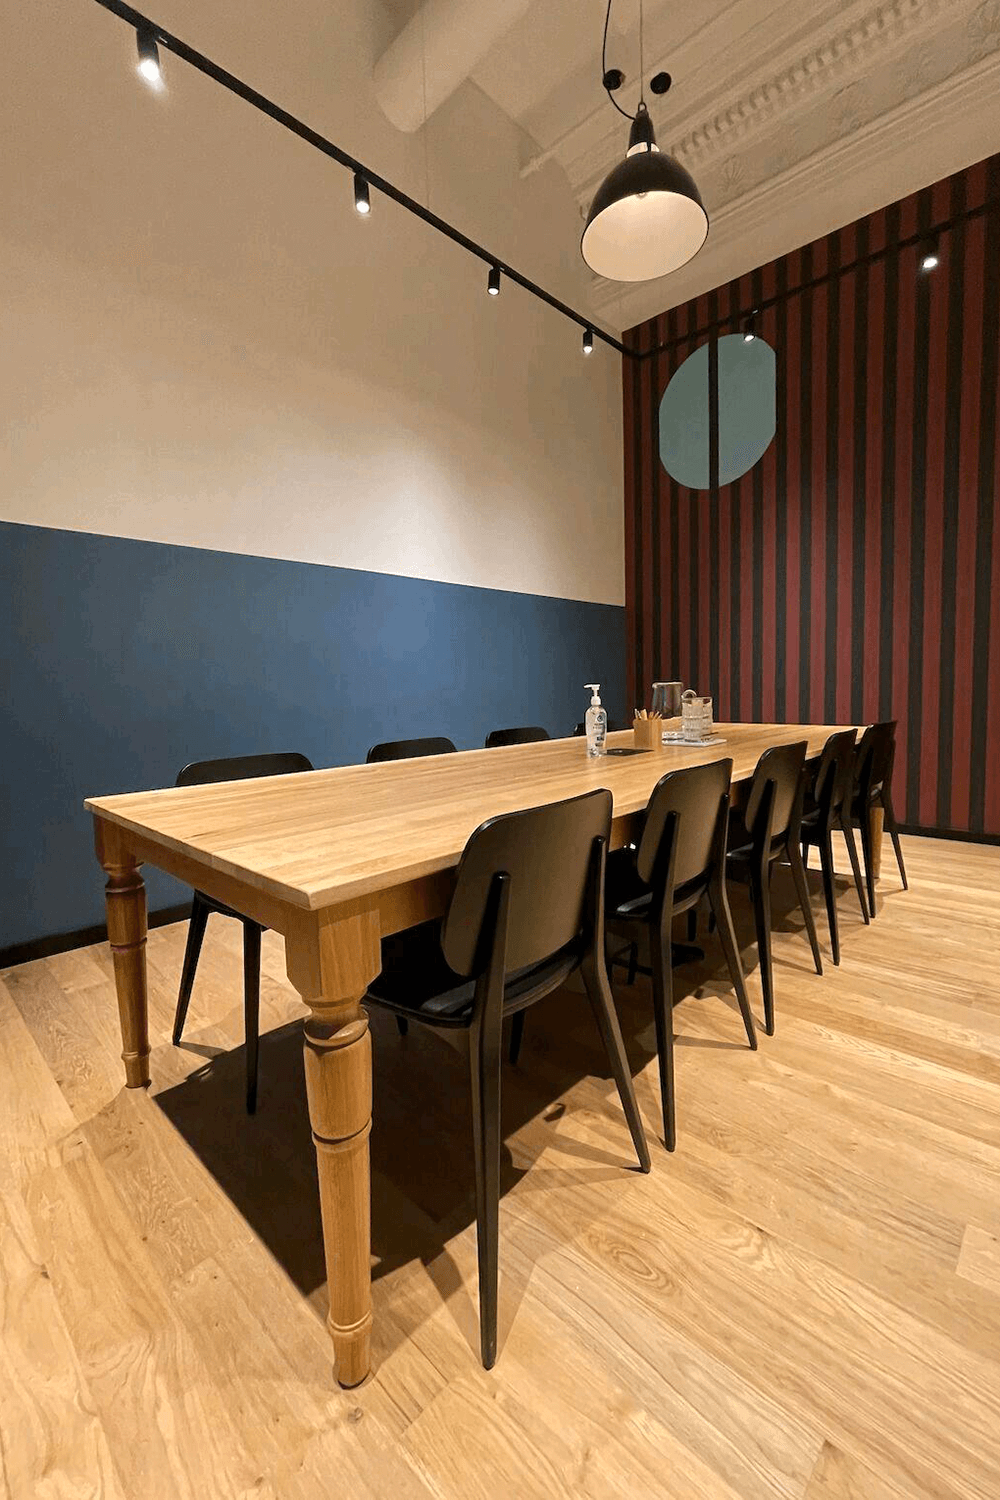 https://tableplacechairs.com/wp-content/uploads/2021/05/MINDSPACE-PHILADELPHIA-for-web-1.png